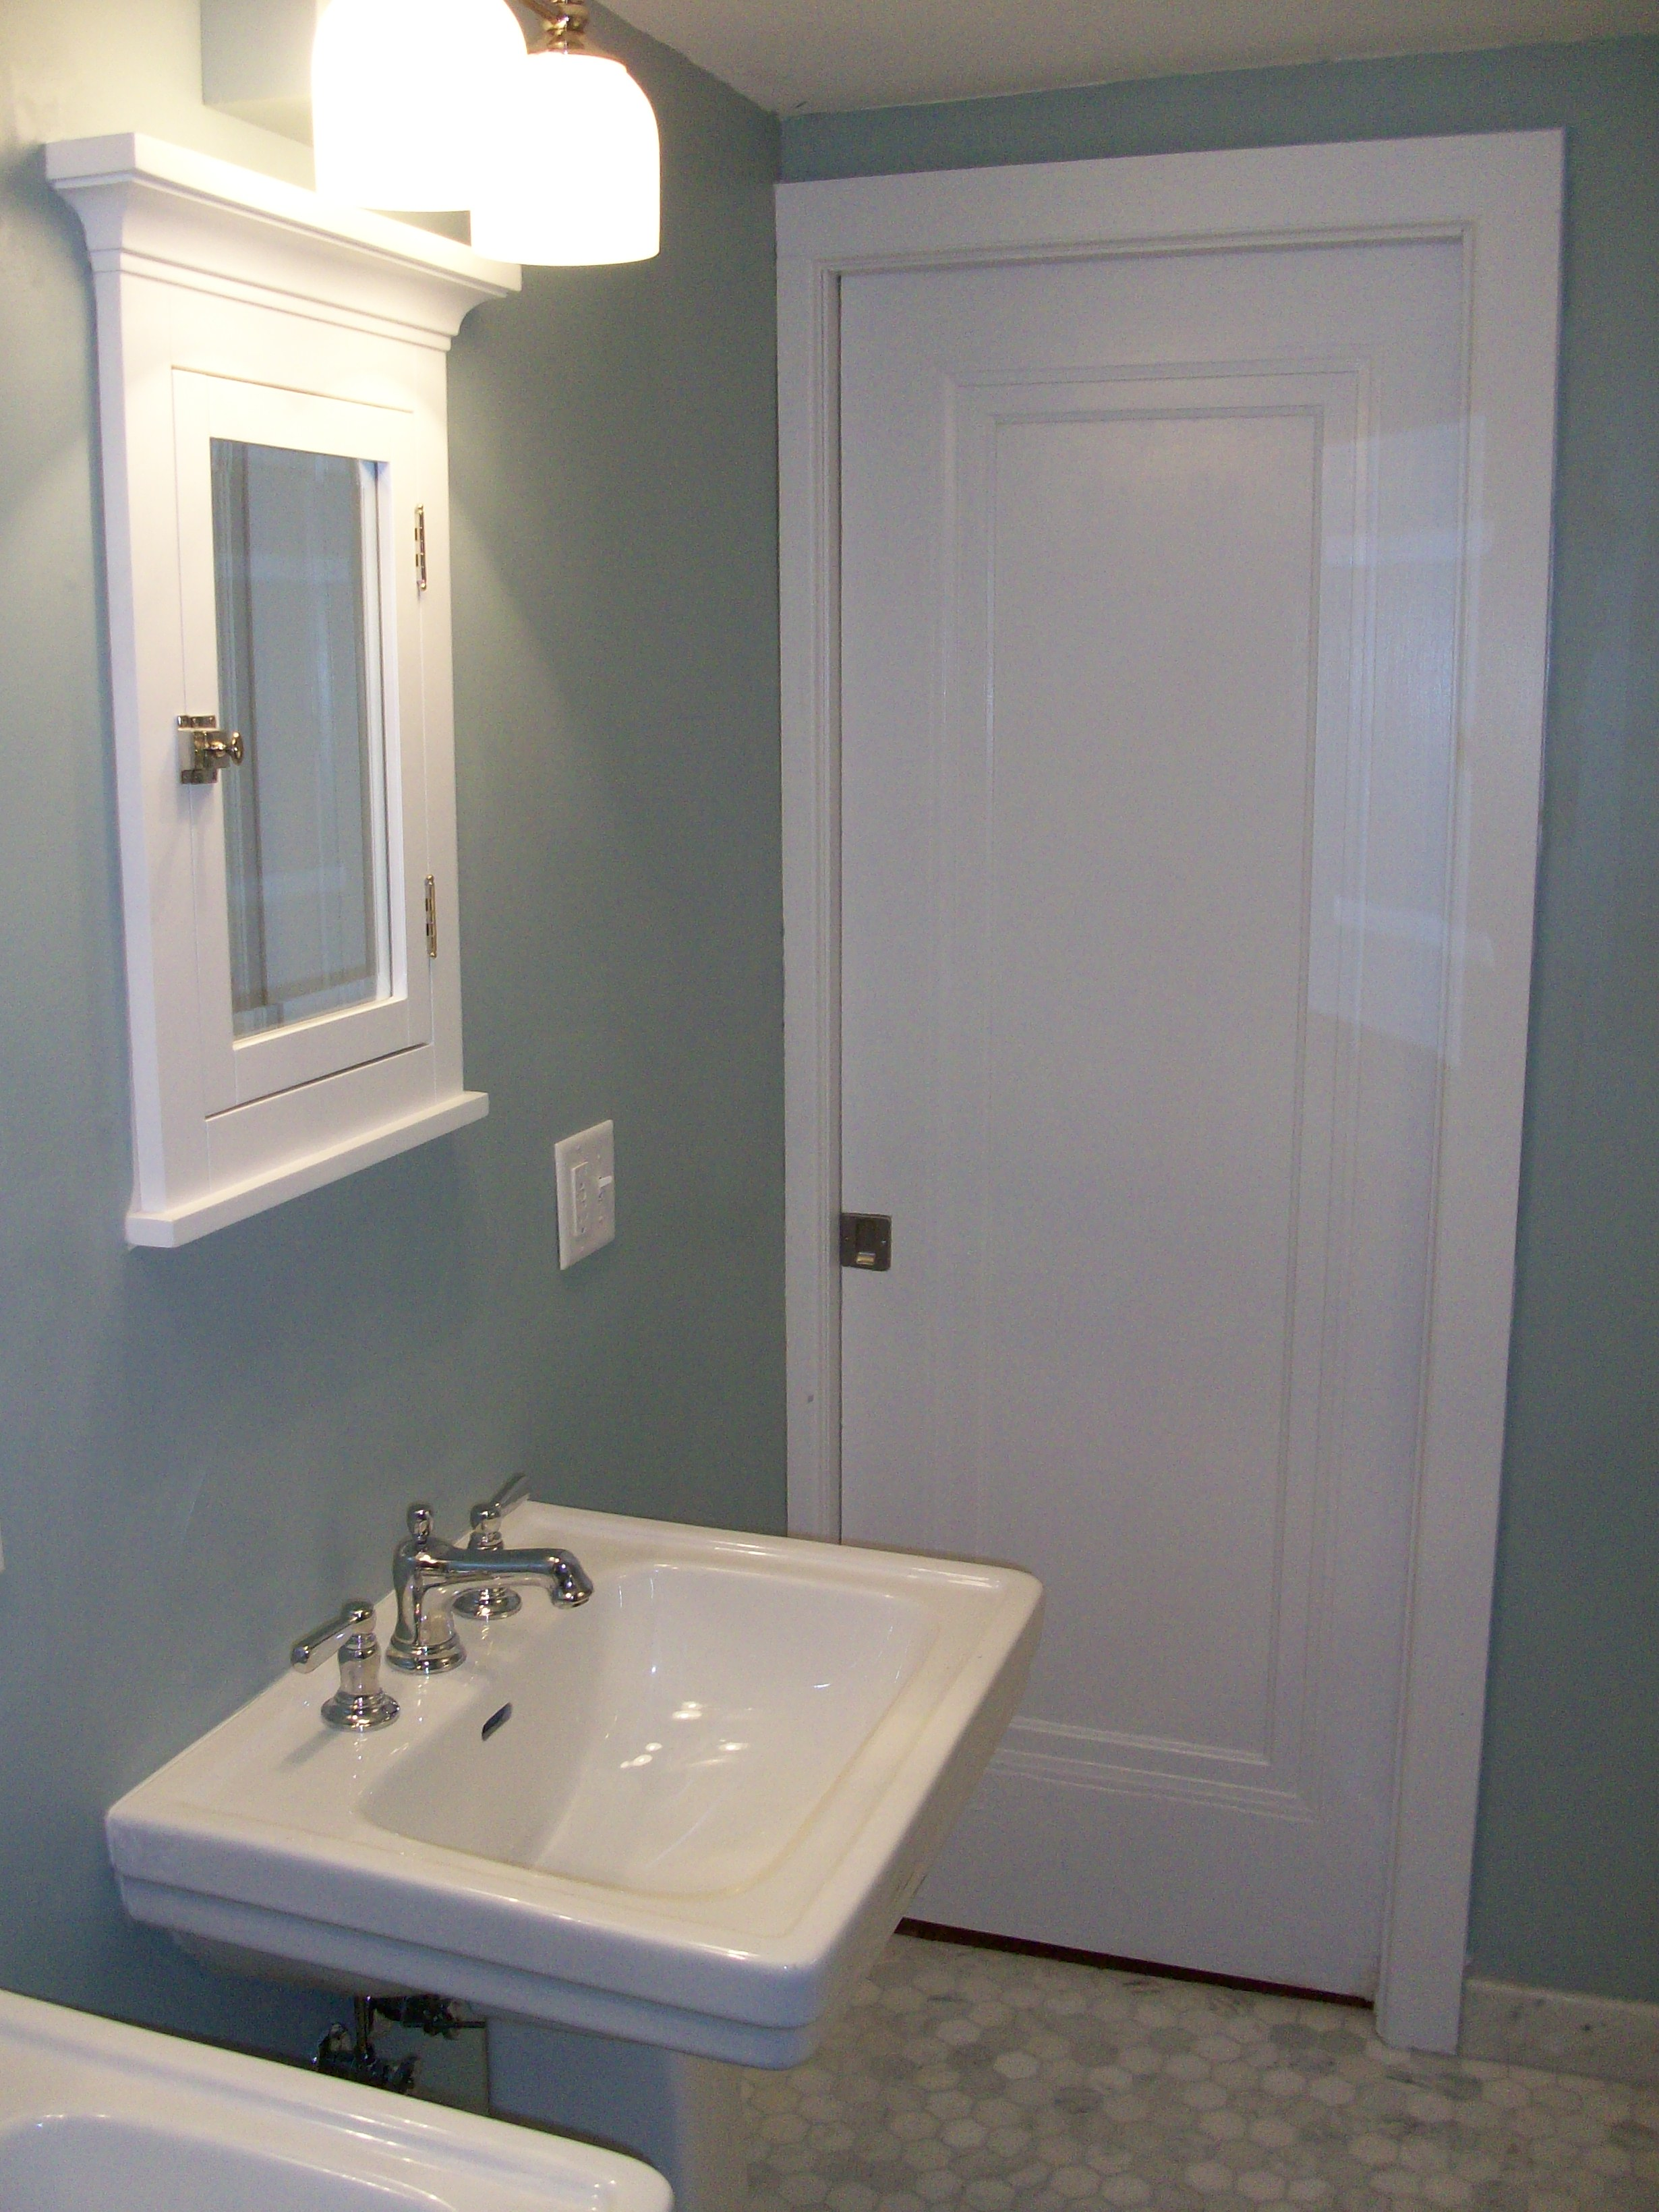 1920s bathrooms 28 images fun house redo of my 1920 s for 1920s bathroom remodel ideas